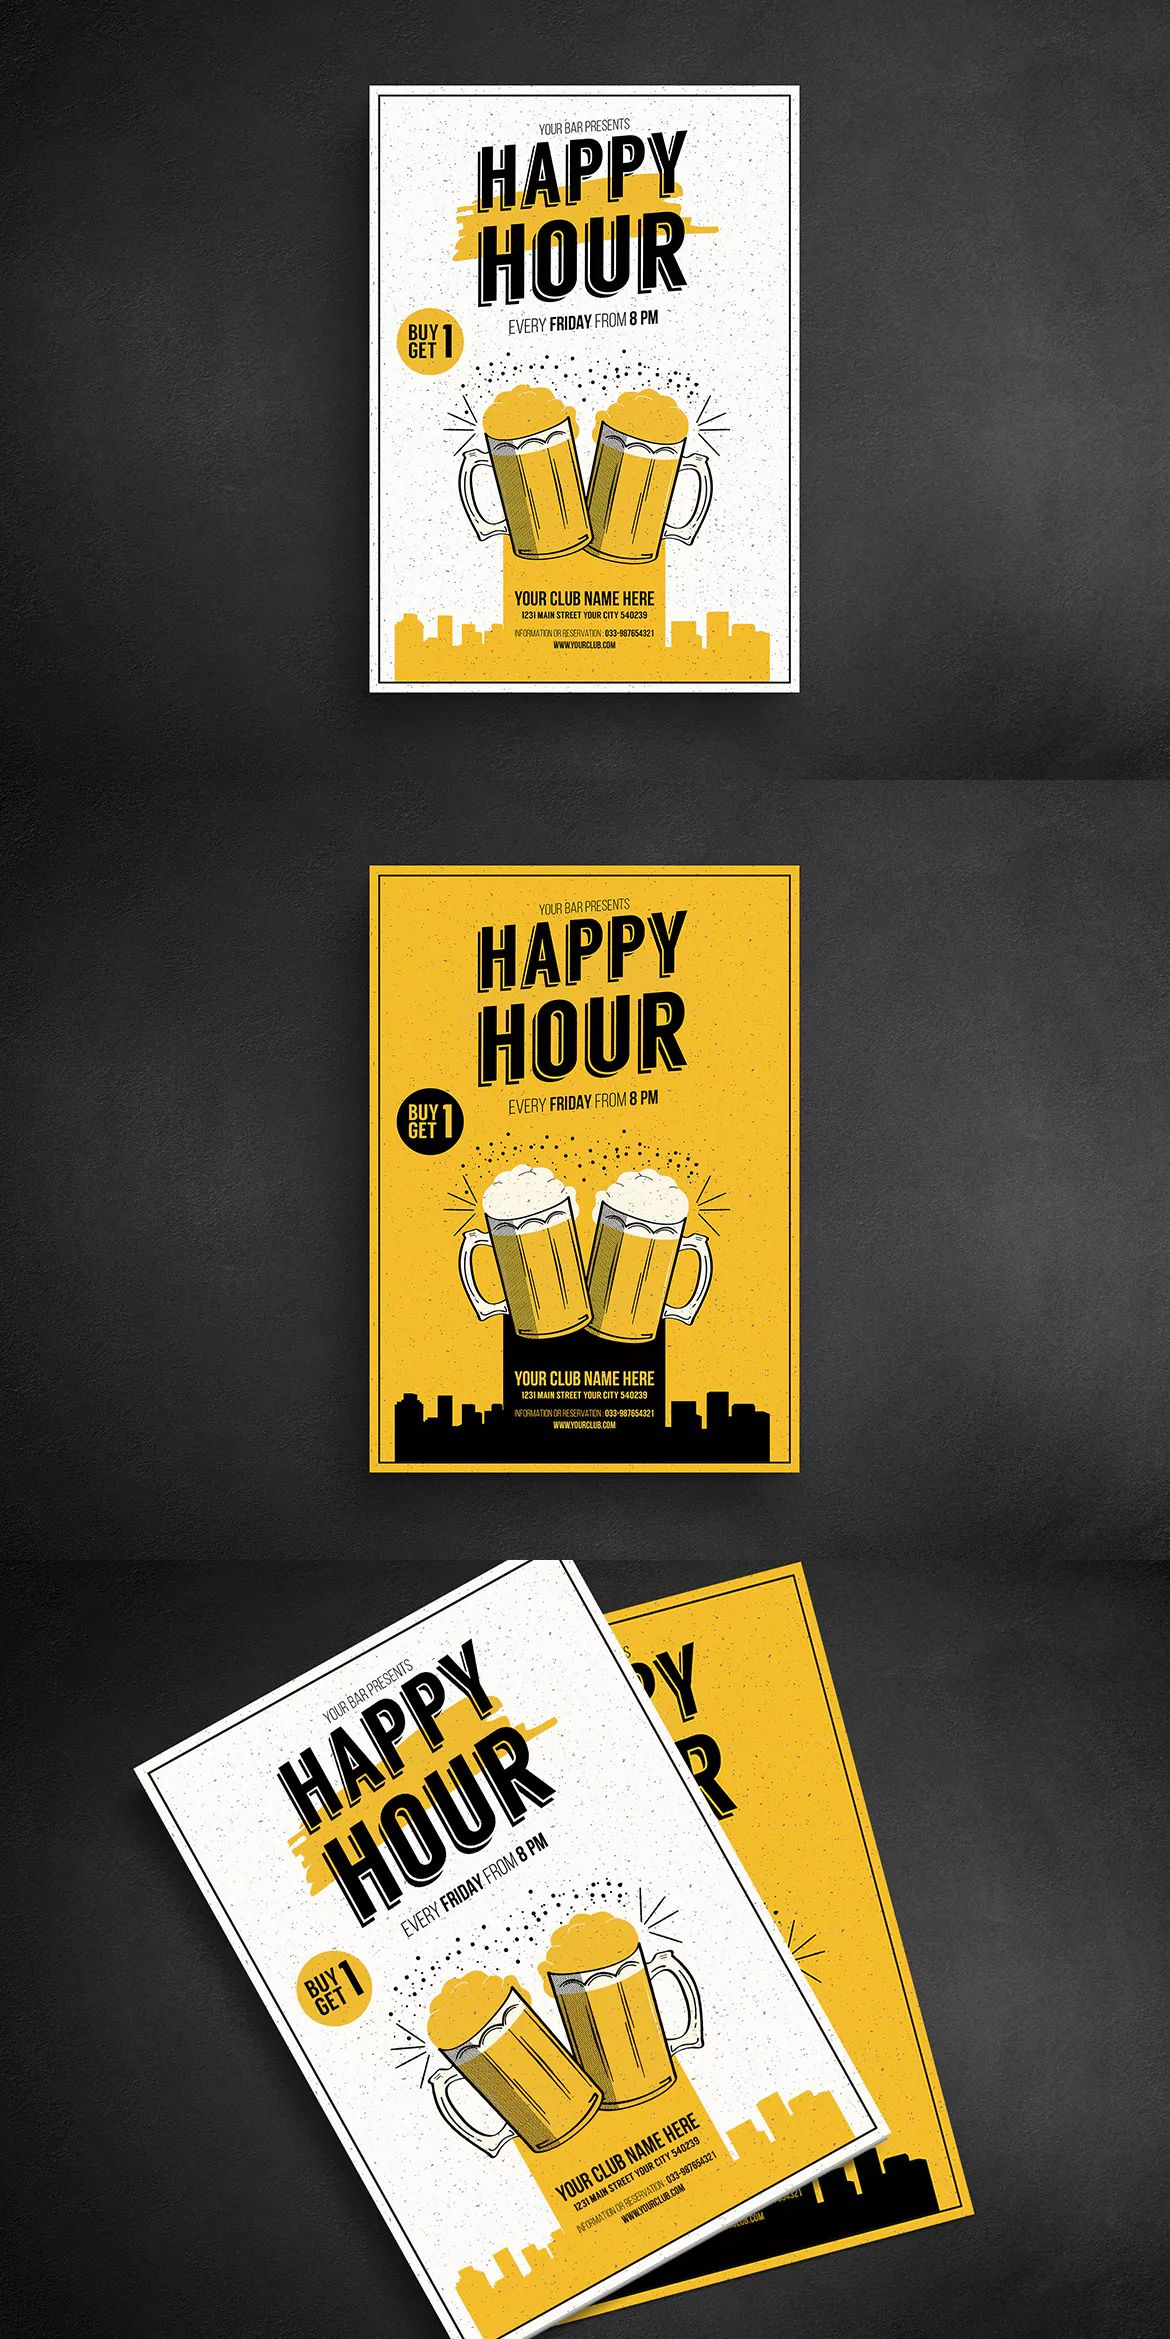 Happy Hour Beer Promotion Flyer Template AI, PSD - A4